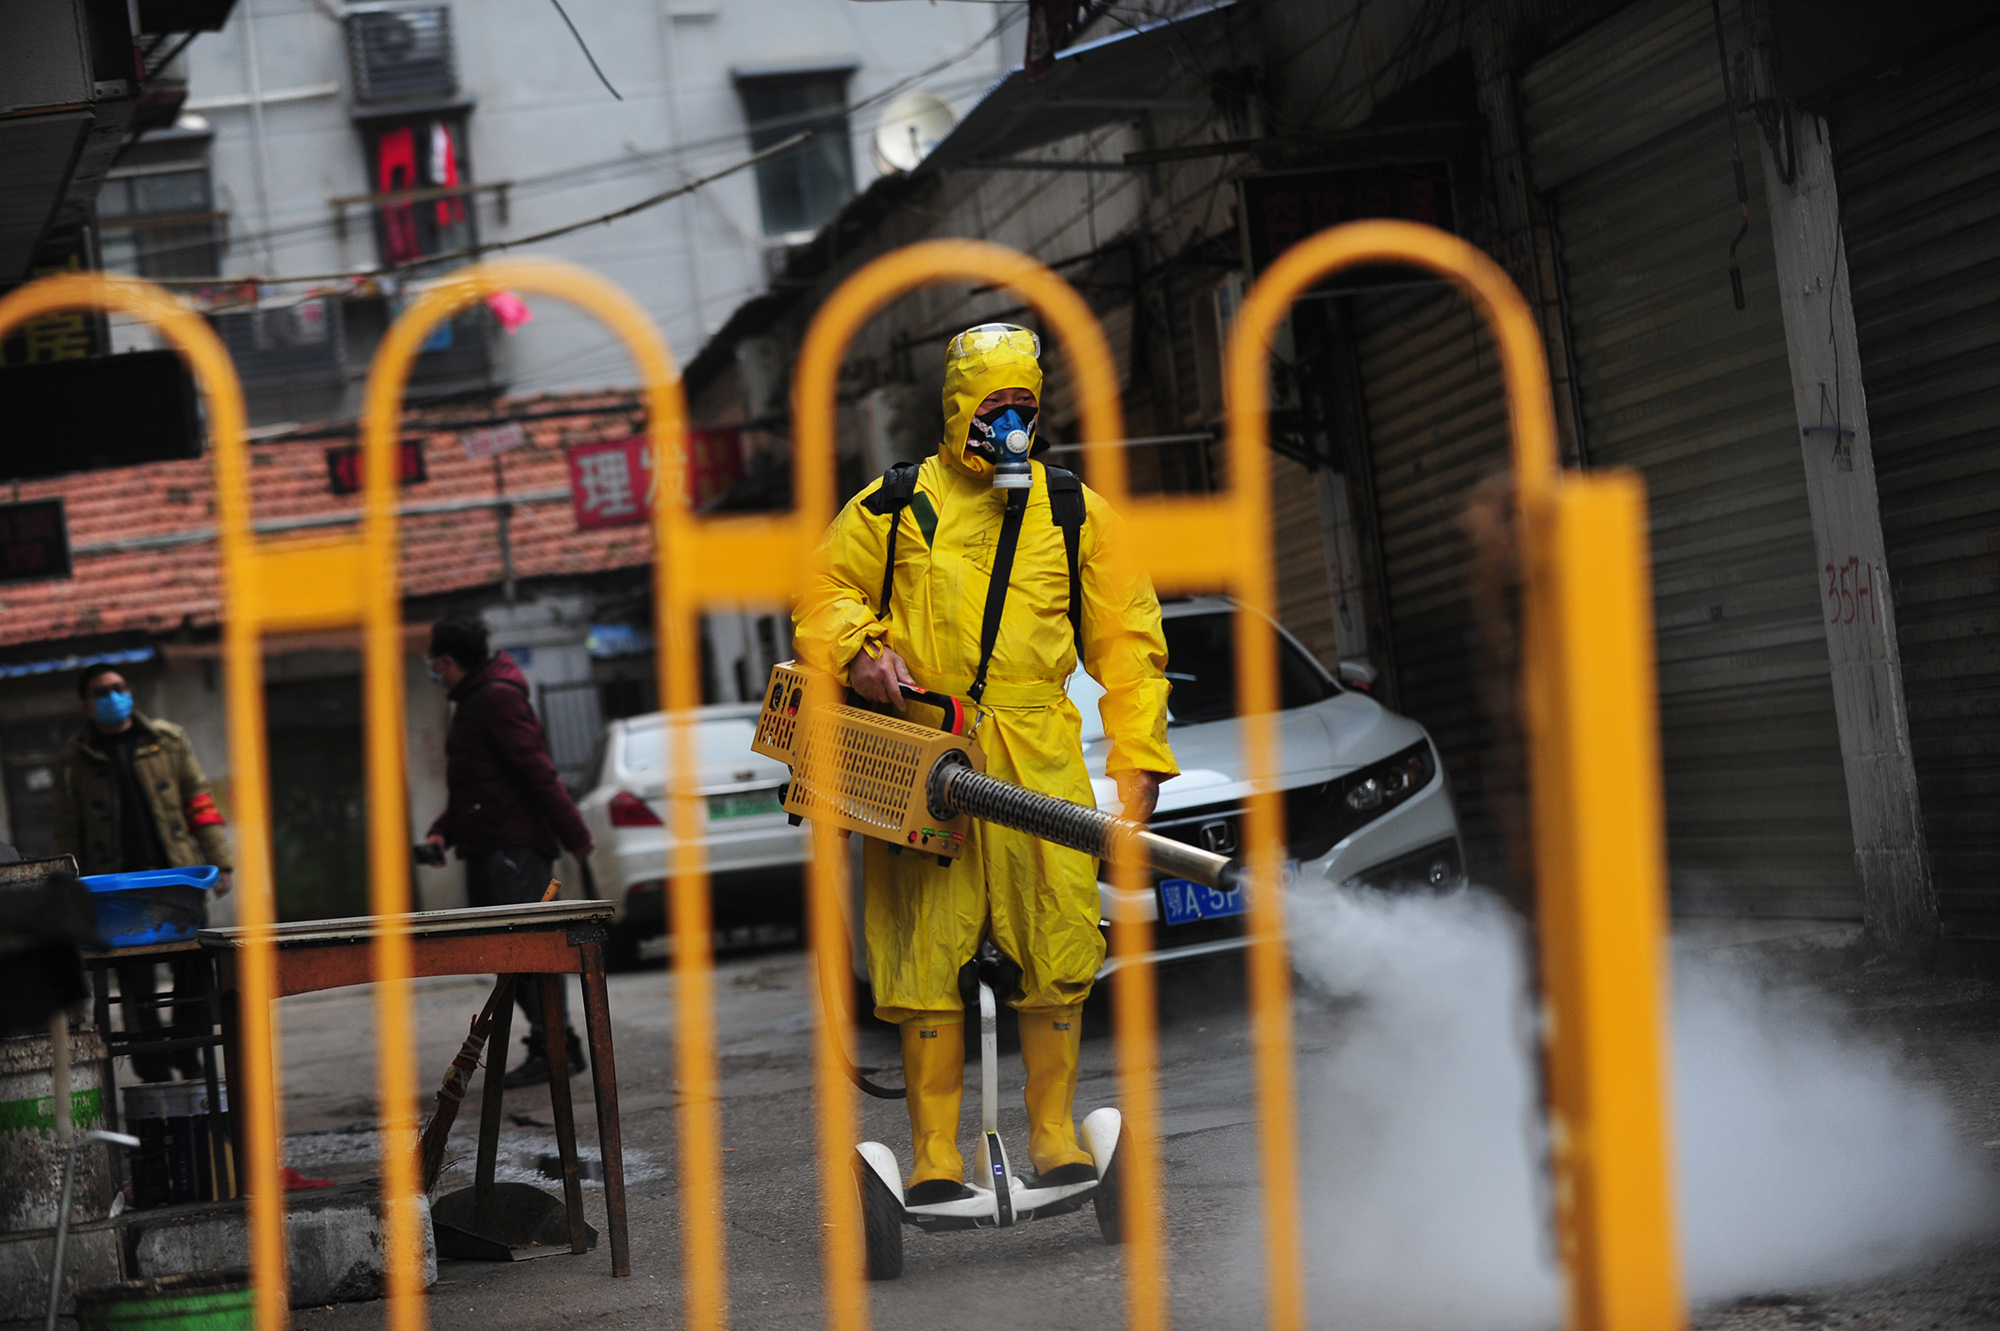 UHAN, CHINA - MARCH 11 2020: A volunteer on a personal transporter disinfects a community in Wuhan in central China's Hubei province Wednesday, March 11, 2020.- PHOTOGRAPH BY Feature China / Barcroft Studios / Future Publishing (Photo credit should read Feature China/Barcroft Media via Getty Images